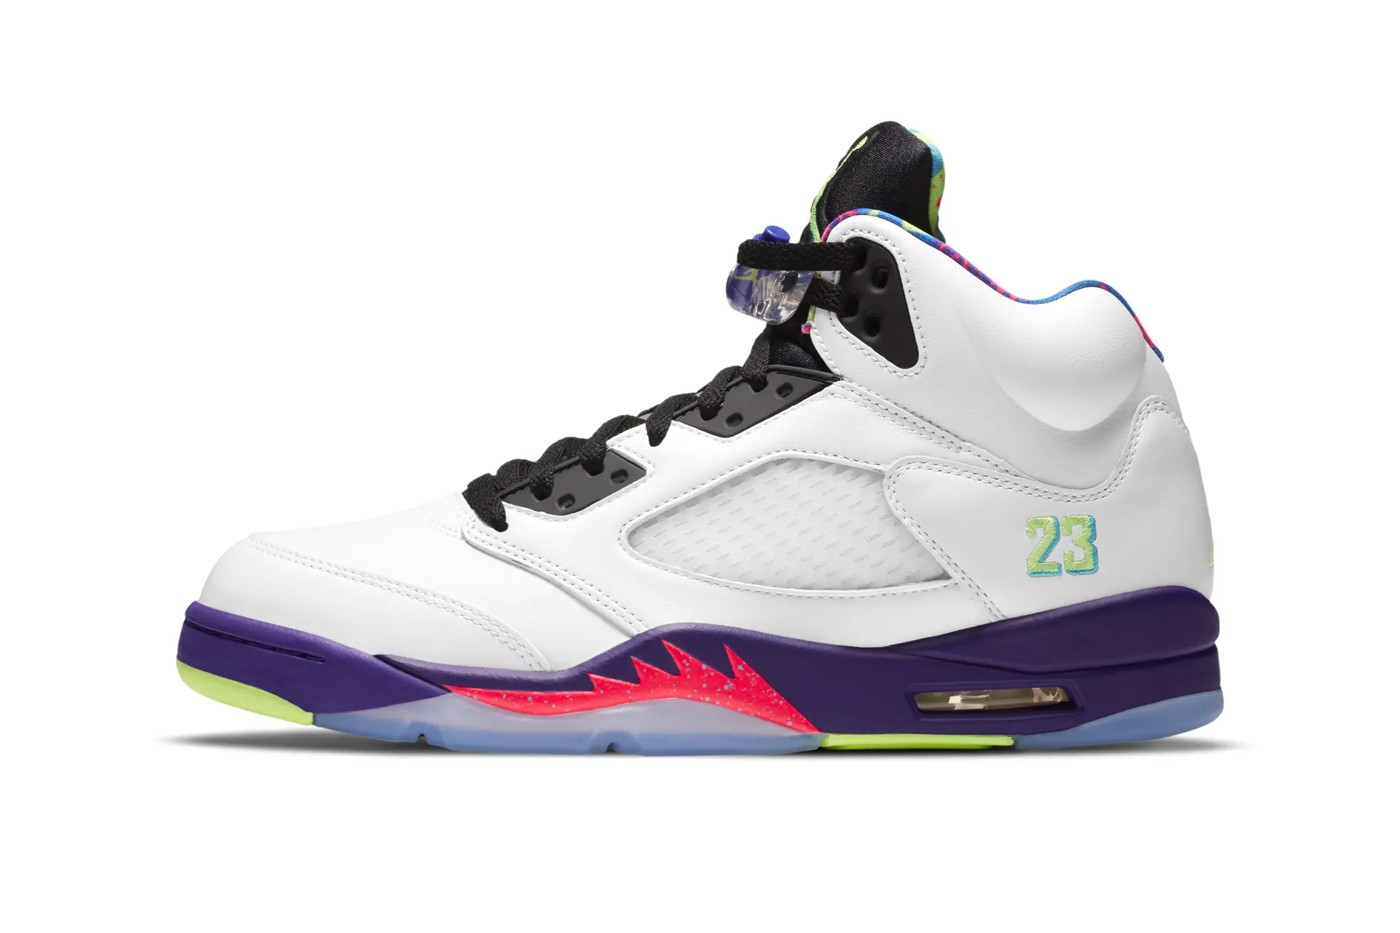 The Air Jordan 5 'Alternate Bel-Air' is Finally Releasing